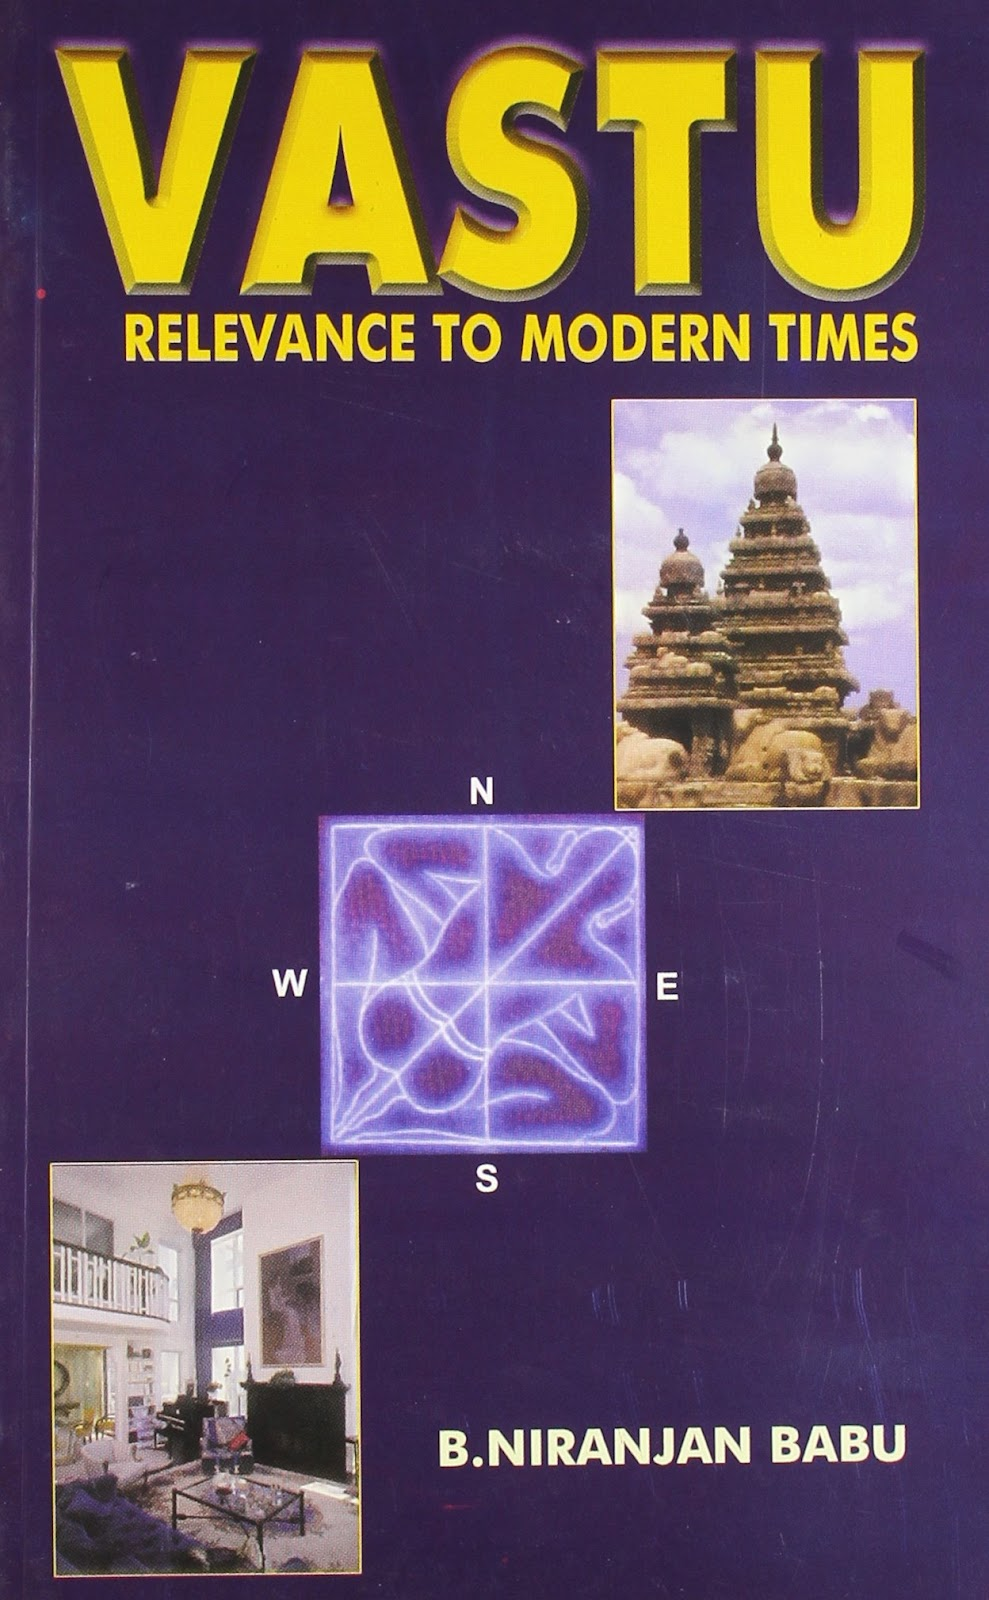 Vastu-Relevance-to-Modern-Times.jpg